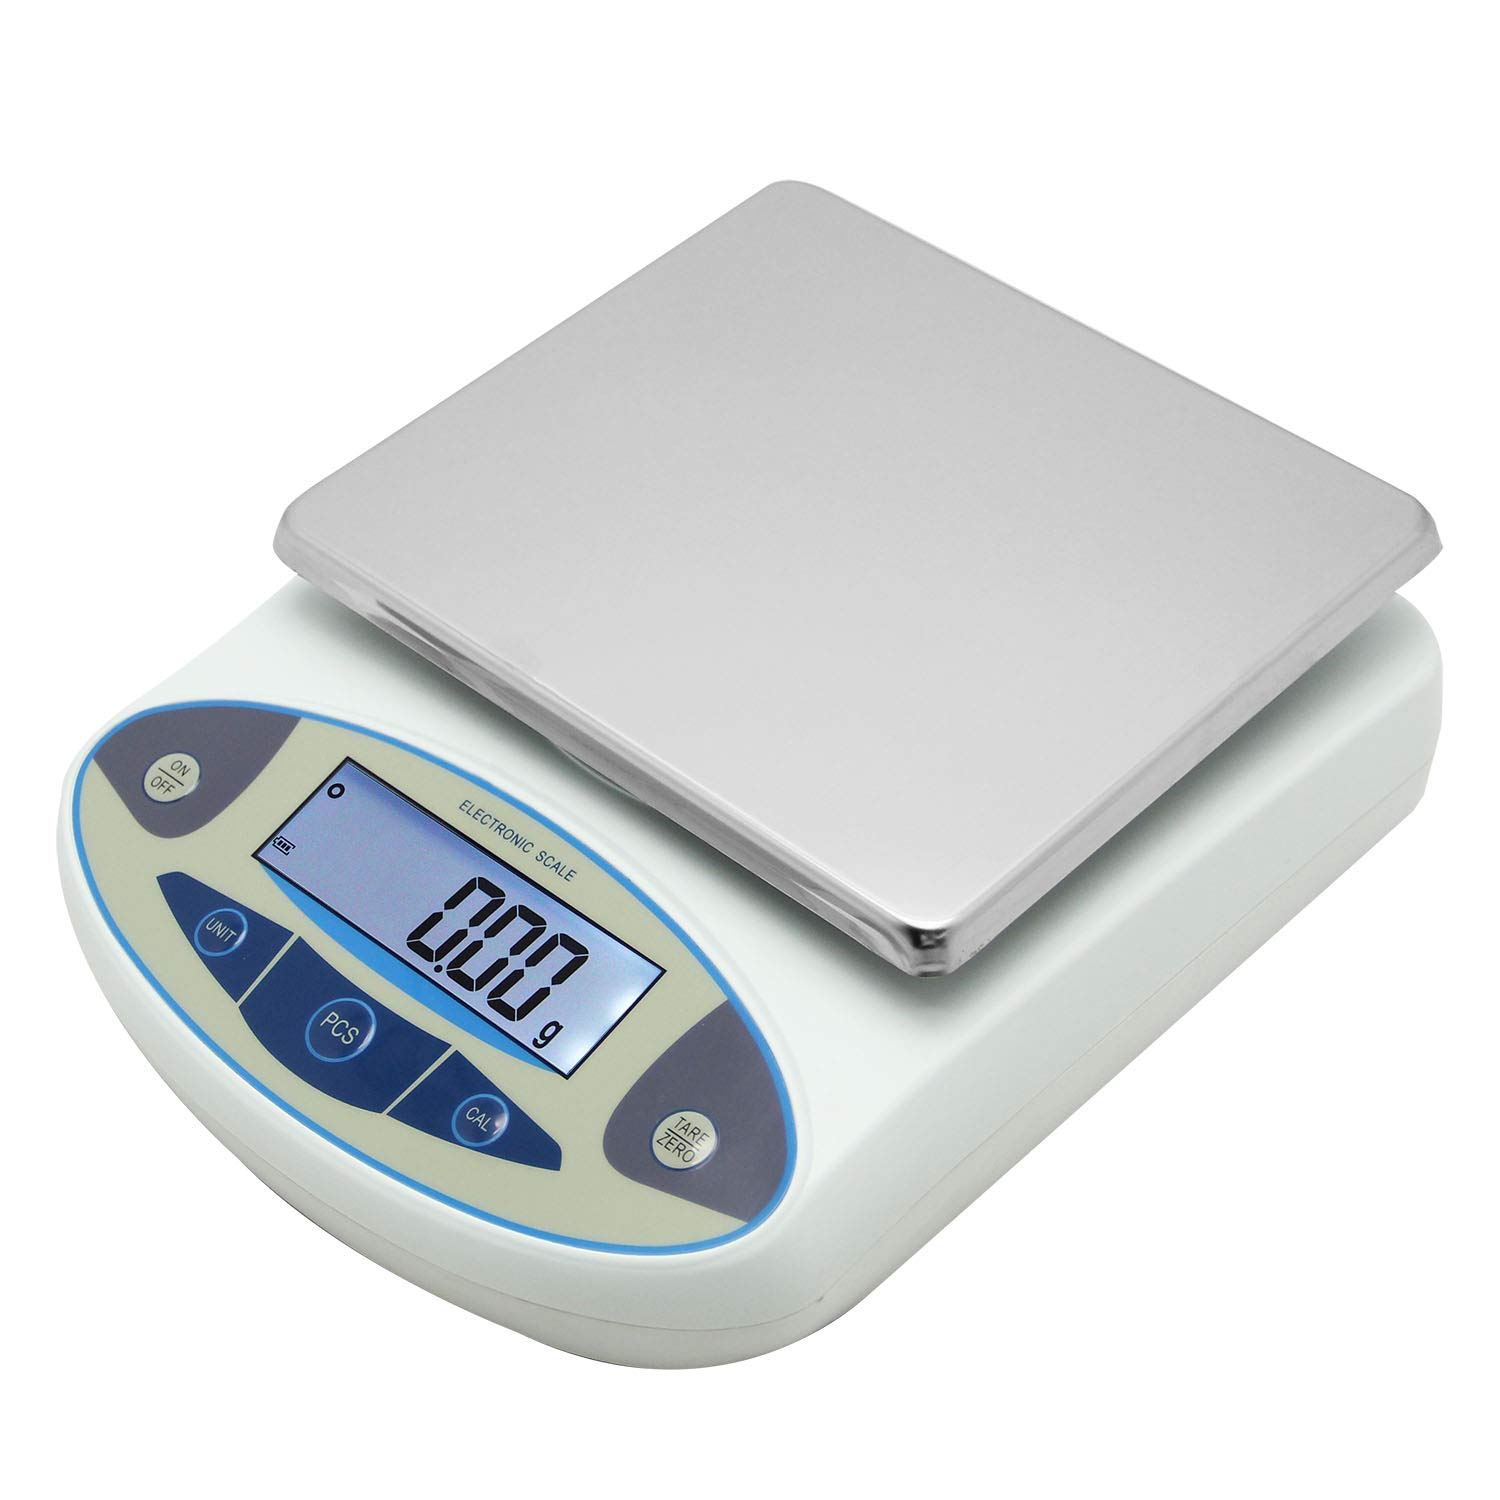 CGOLDENWALL High Precision Lab Analytical Electronic Balance Digital Precision Scale Laboratory Precision Weighing Electronic Scales Balance Jewelry Scales Gold Balance Kitchen Scales (5000g, 0.01g) by CGOLDENWALL